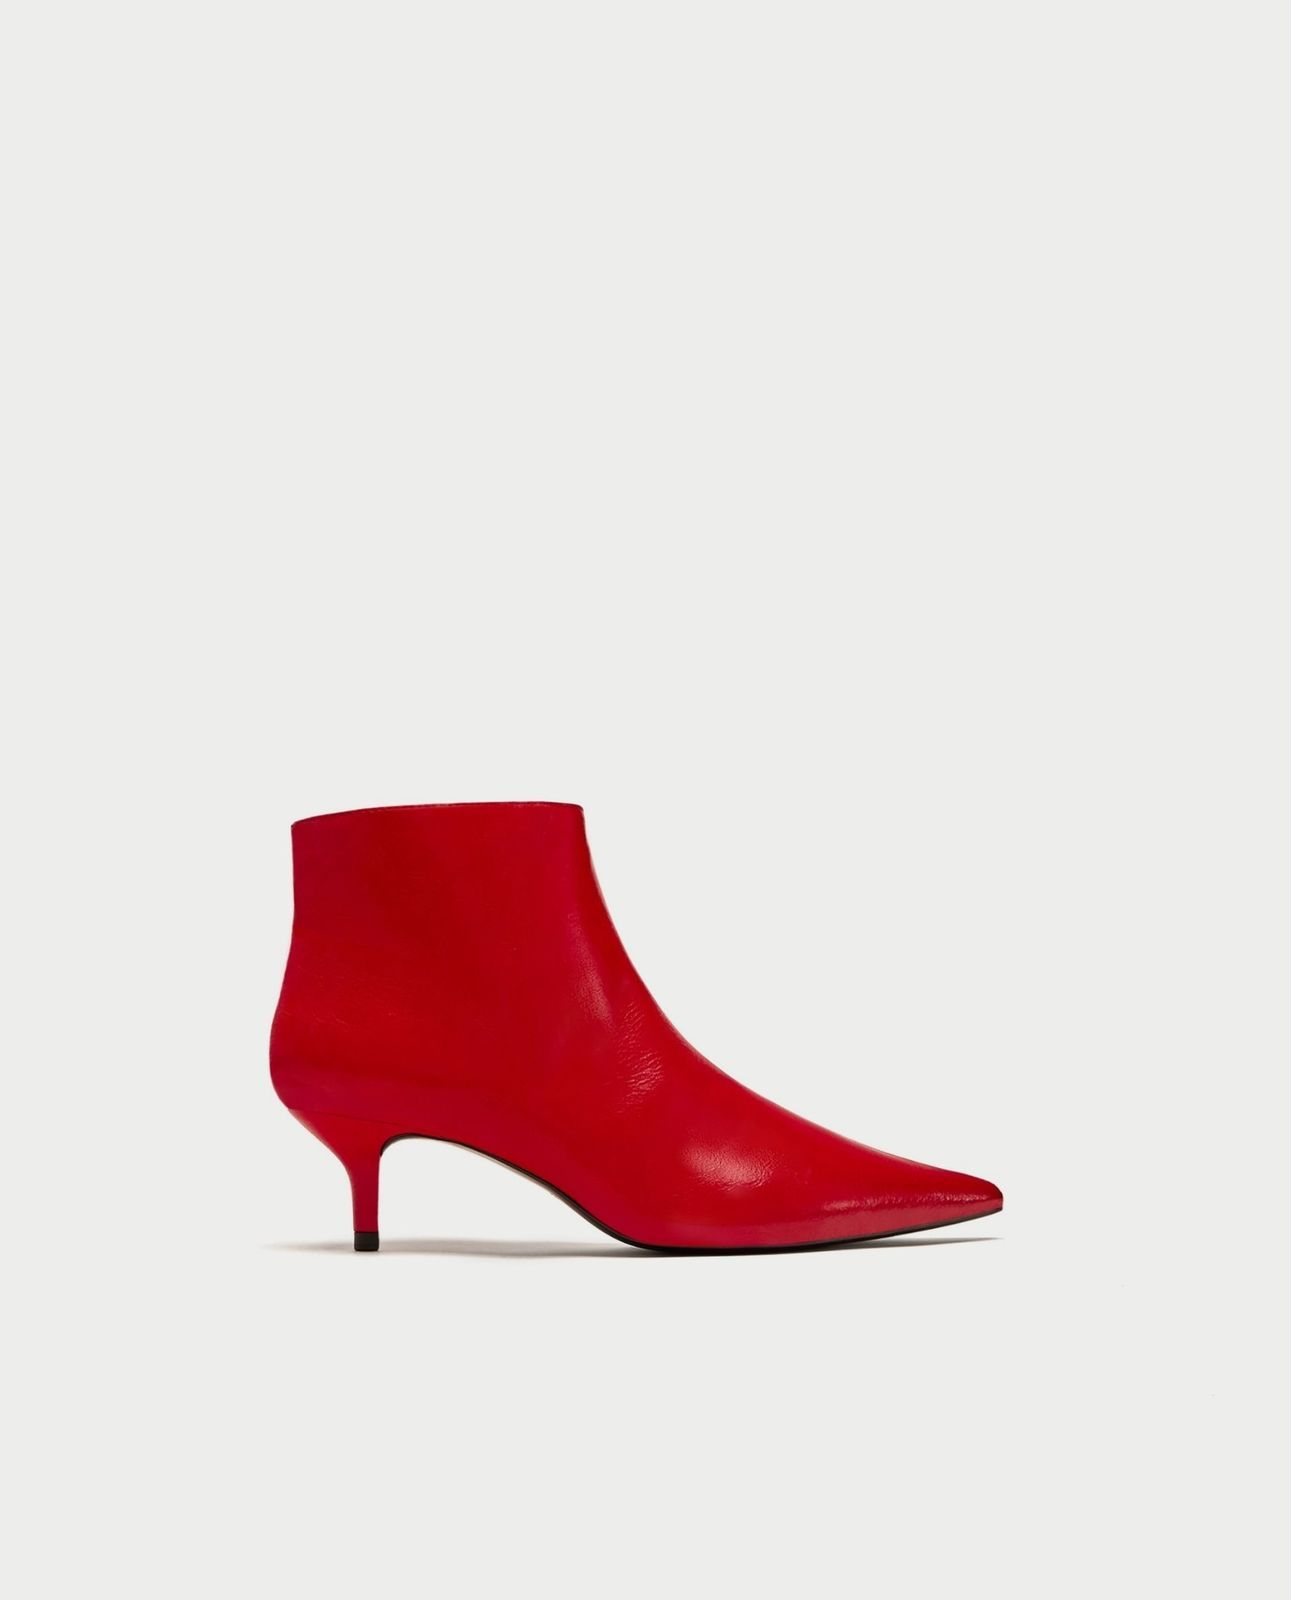 8155b5fe1bb BNWT ZARA Red Mid Heel Ankle Boots s.6.5 and and 50 similar items